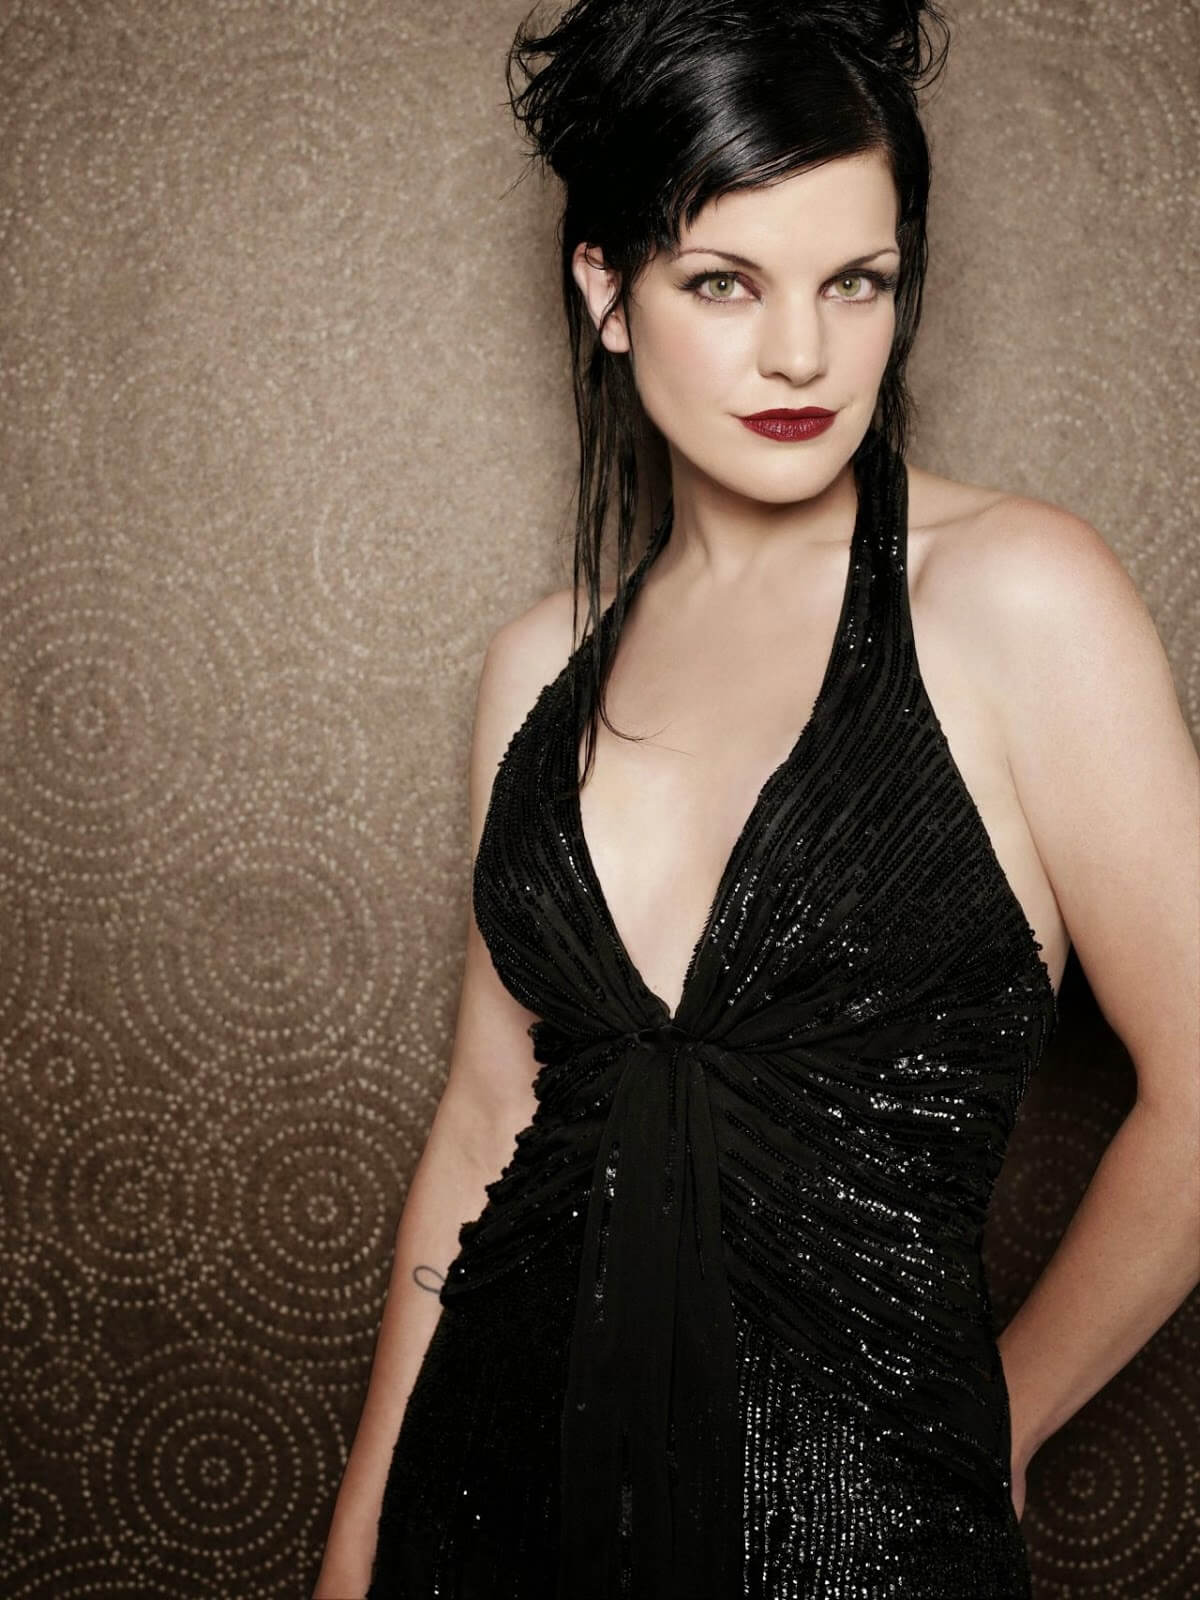 pauley perrette cleavage pics